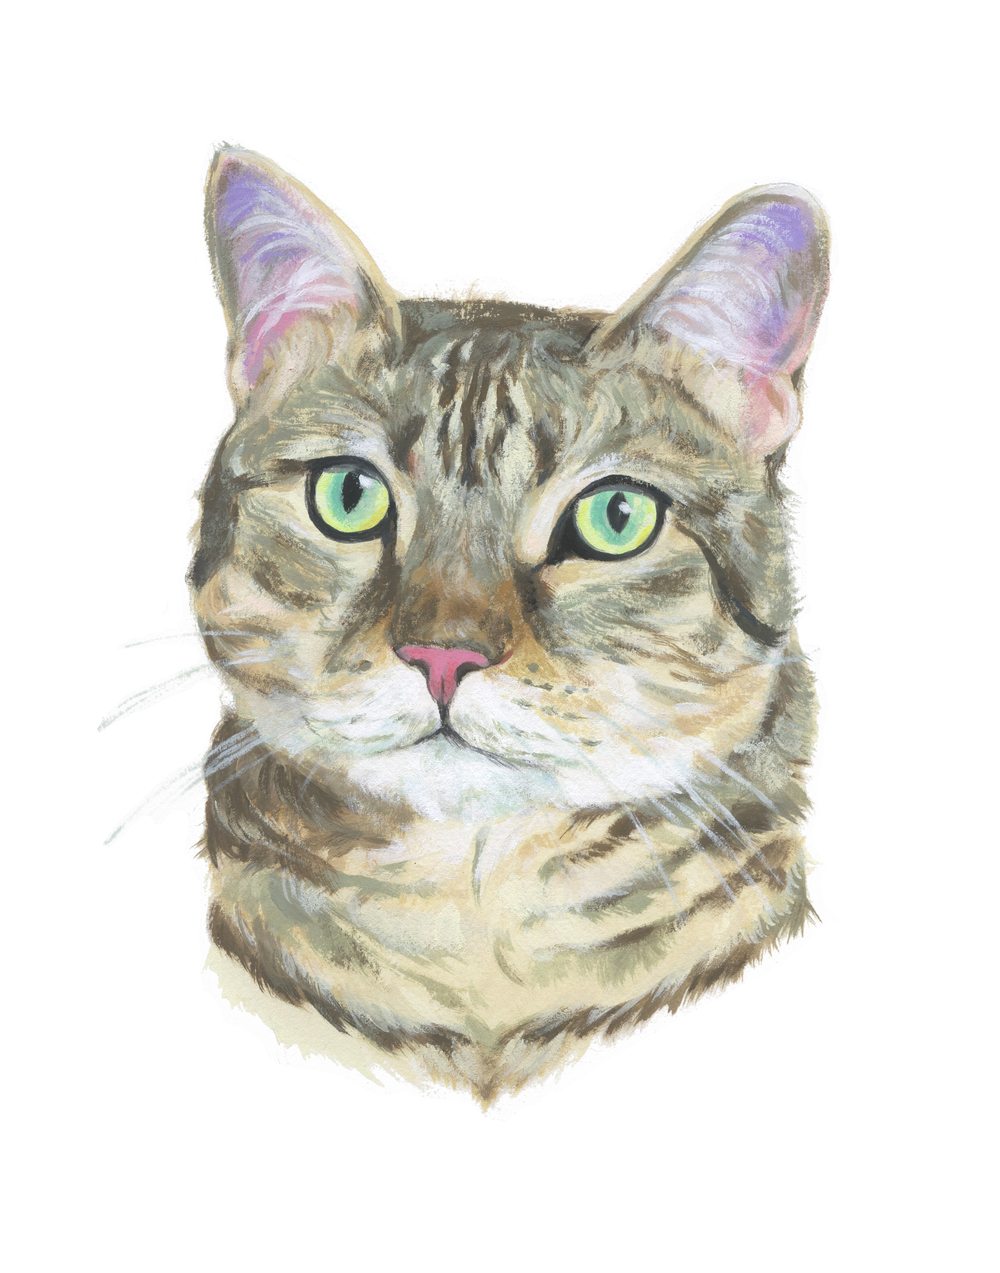 Pet Portrait_Sean Hallerud.jpg